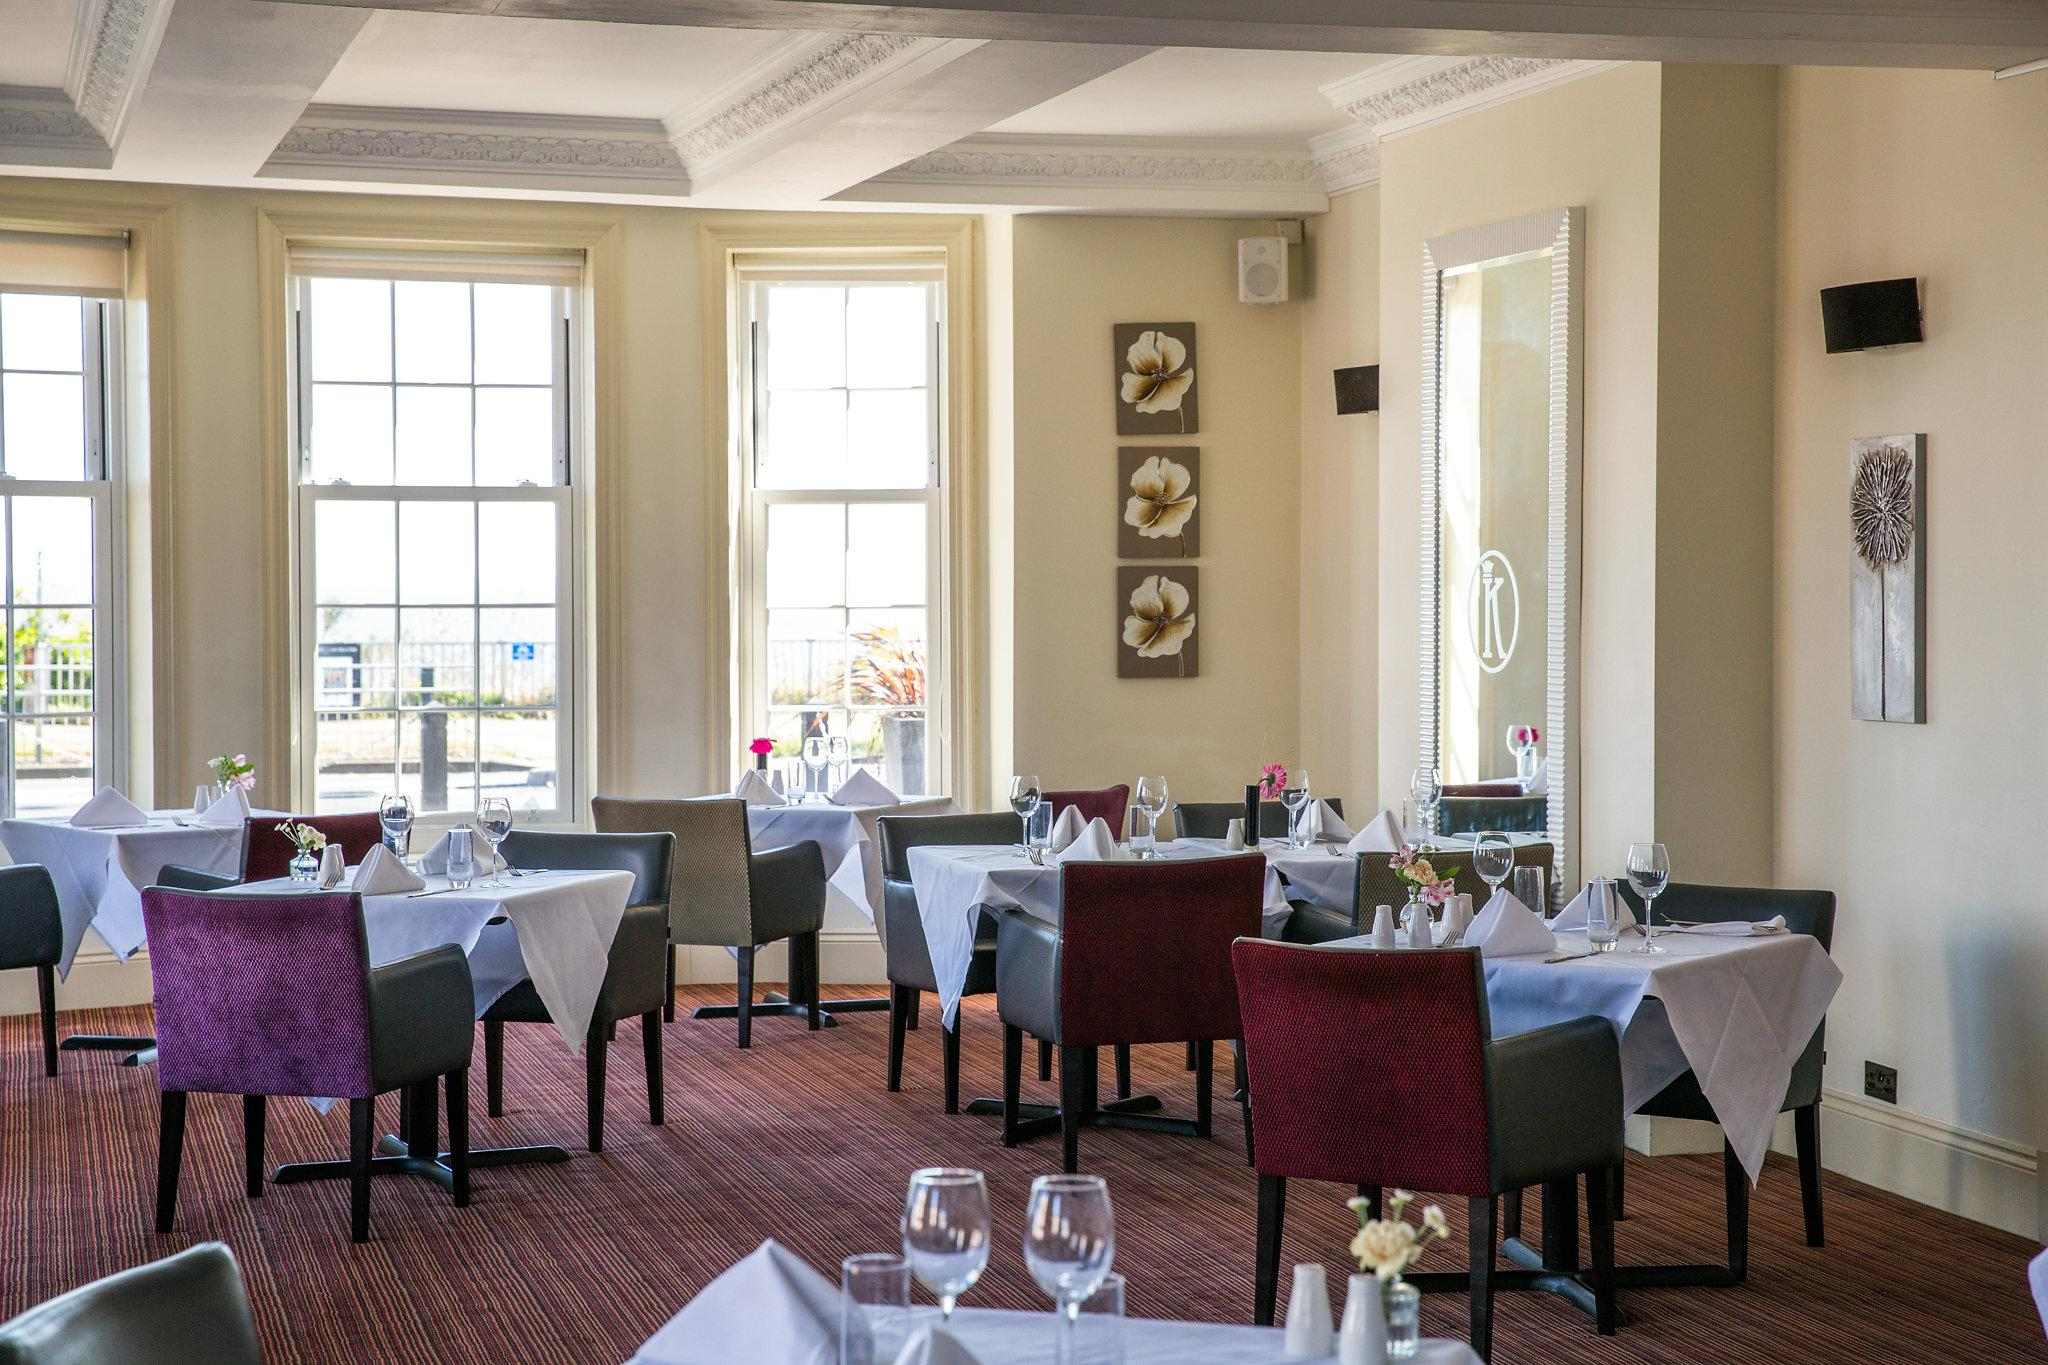 The King Suite Restaurant at Kingscliff Hotel - Essex